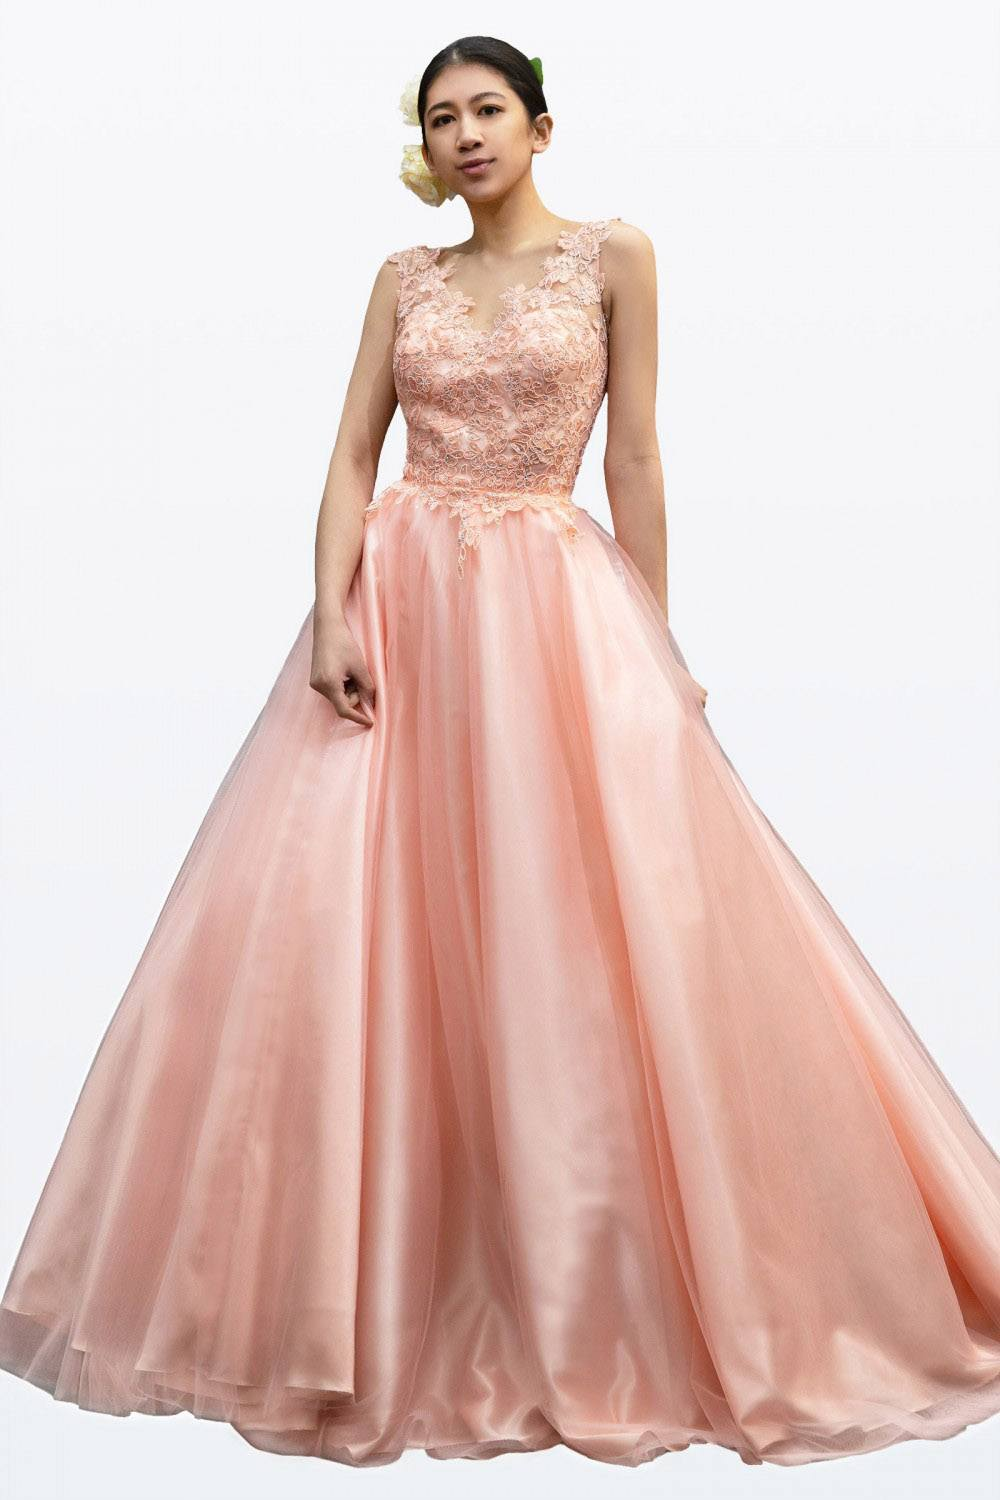 b7578a39eb9e cinderella divine poofy aline blush ball gown lace bodice satin skirt.  silver satin ankle length ...